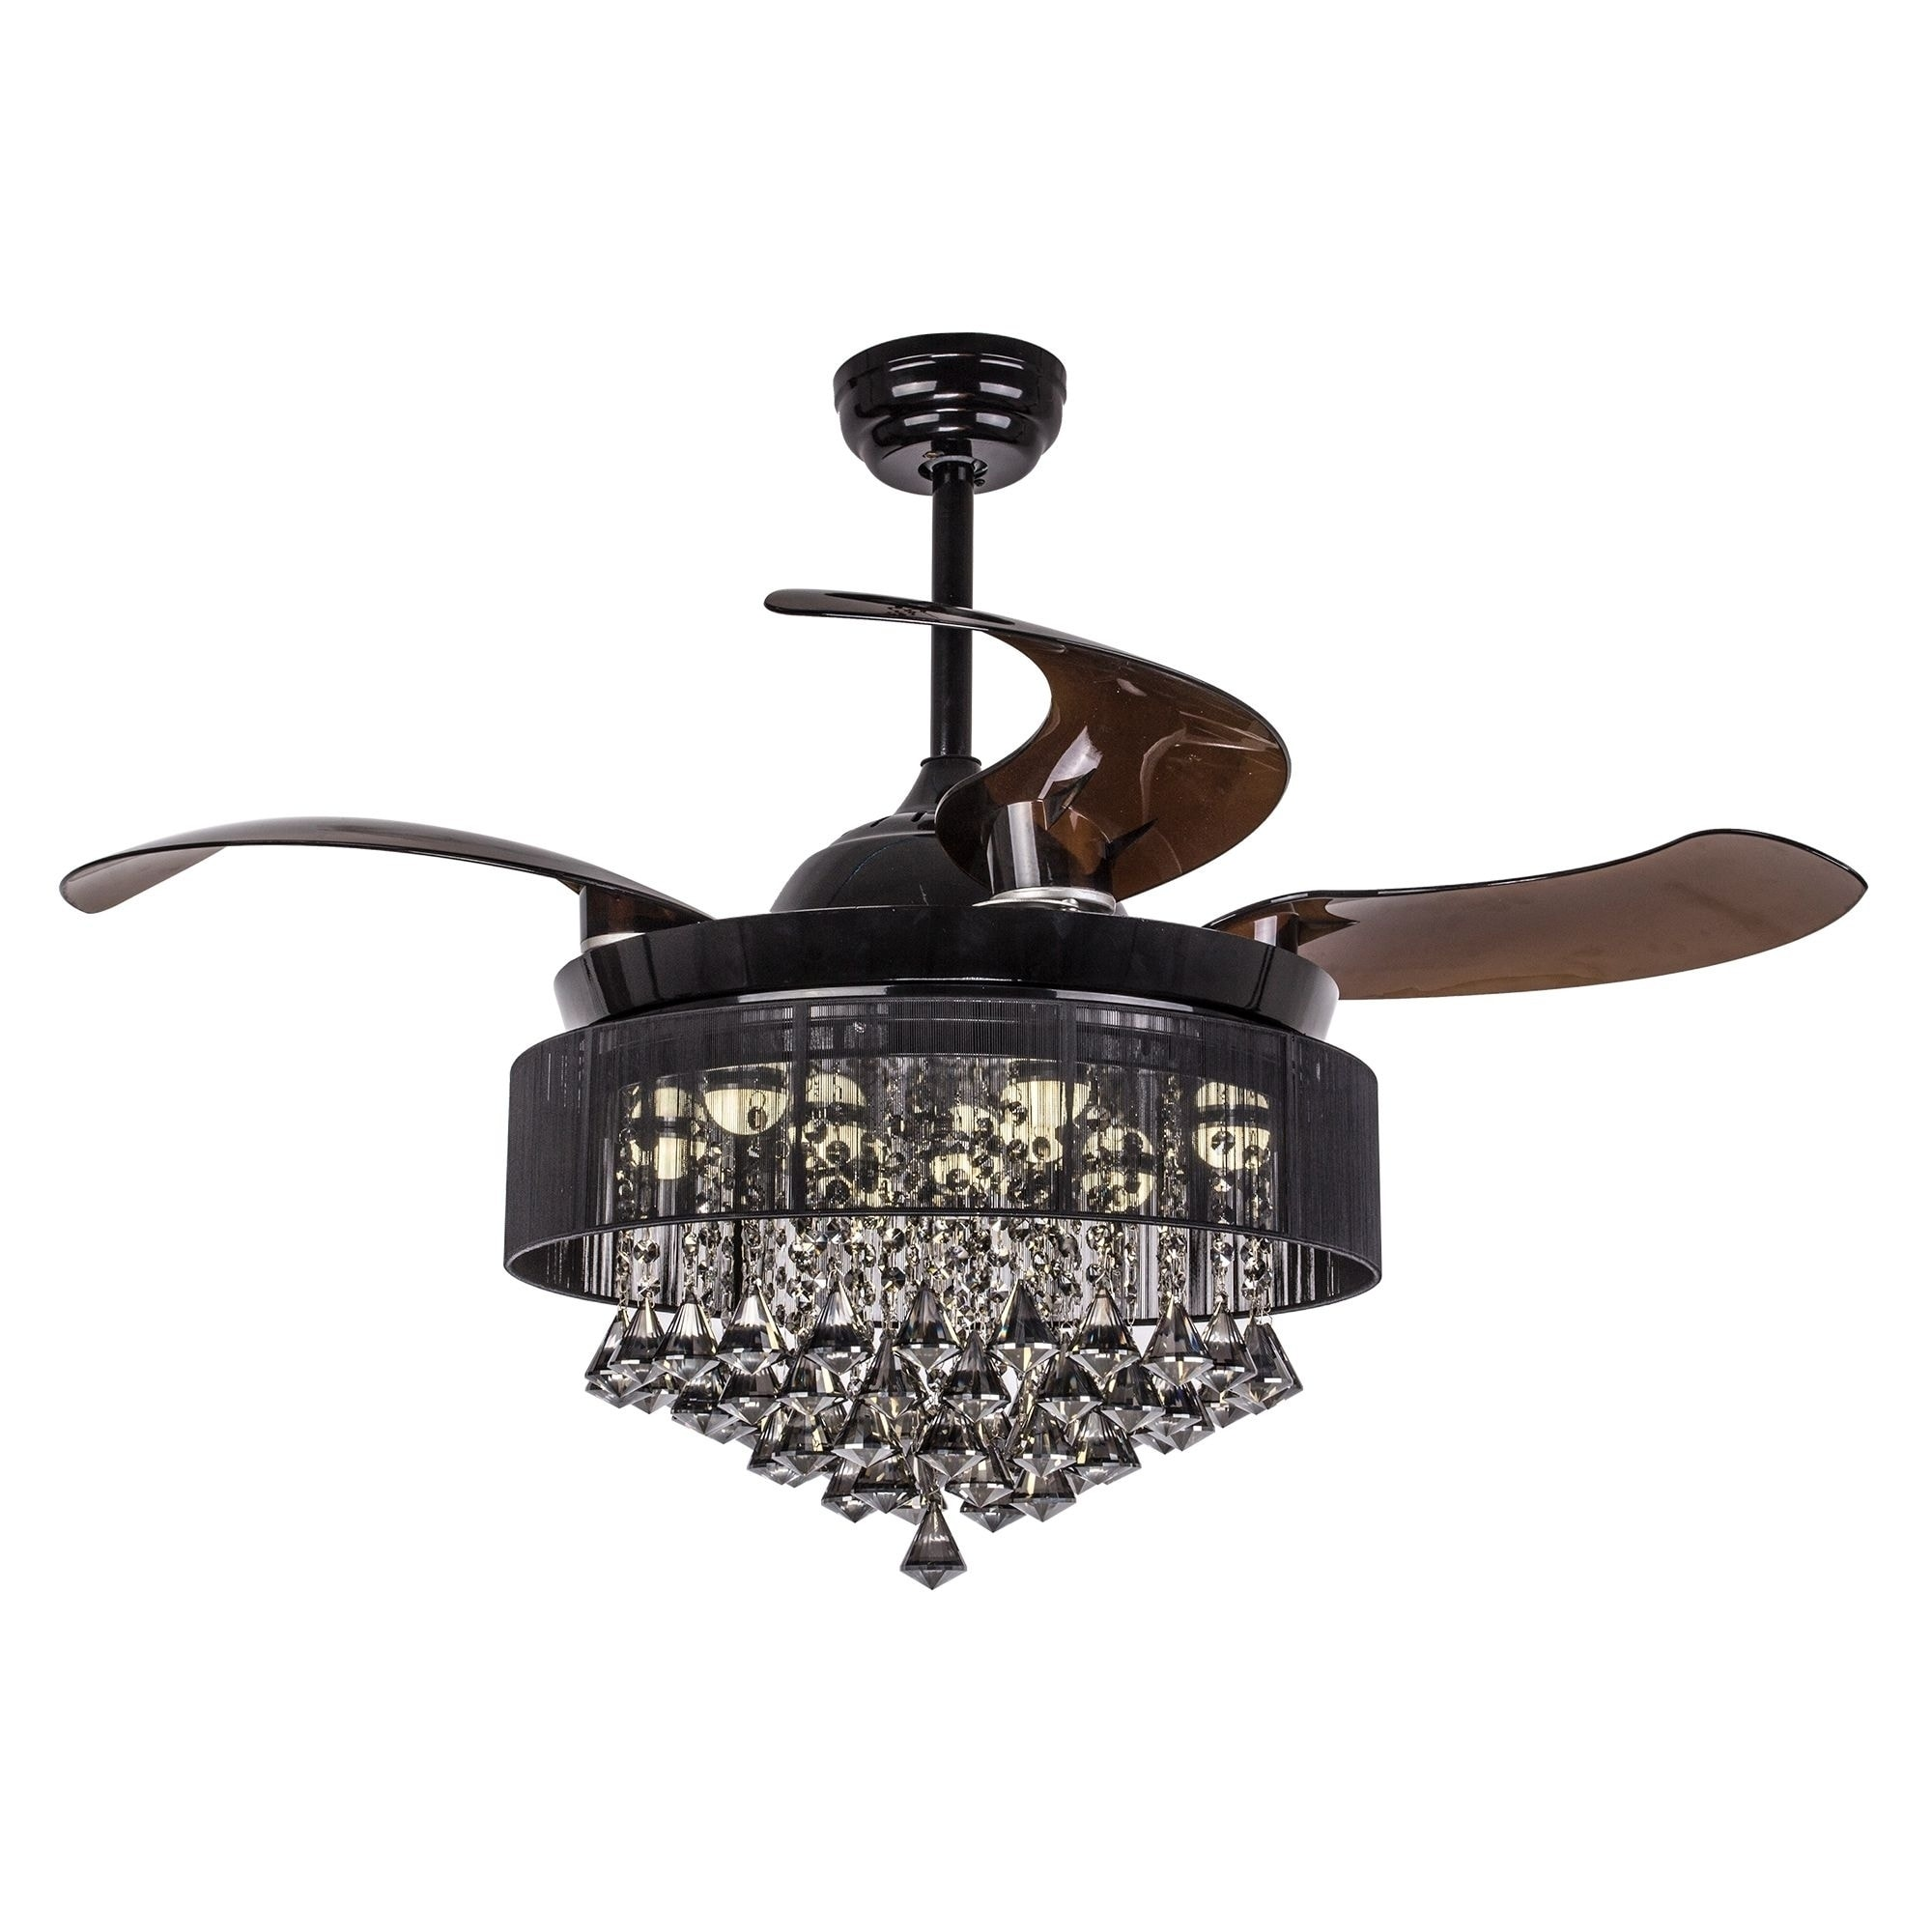 Foldable Blades 46 Inch Black Crystal Led Ceiling Fan Light Kit On Free Shipping Today 18088601